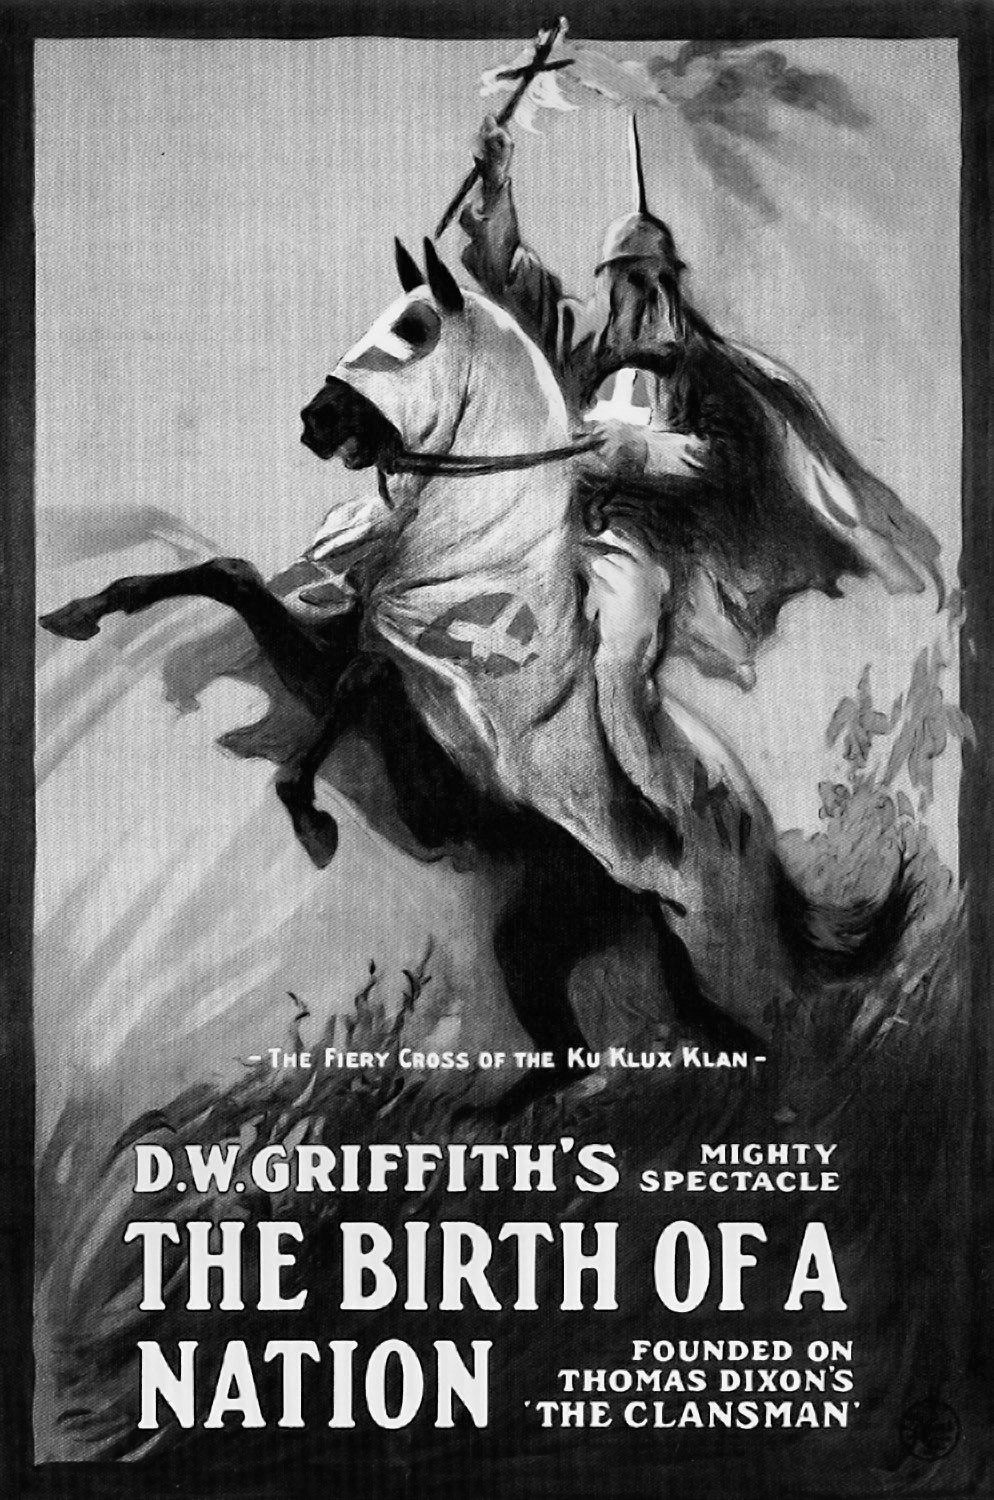 Poster for D.W. Griffith's 'mighty spectacle'  The Birth of a Nation ( 1915).